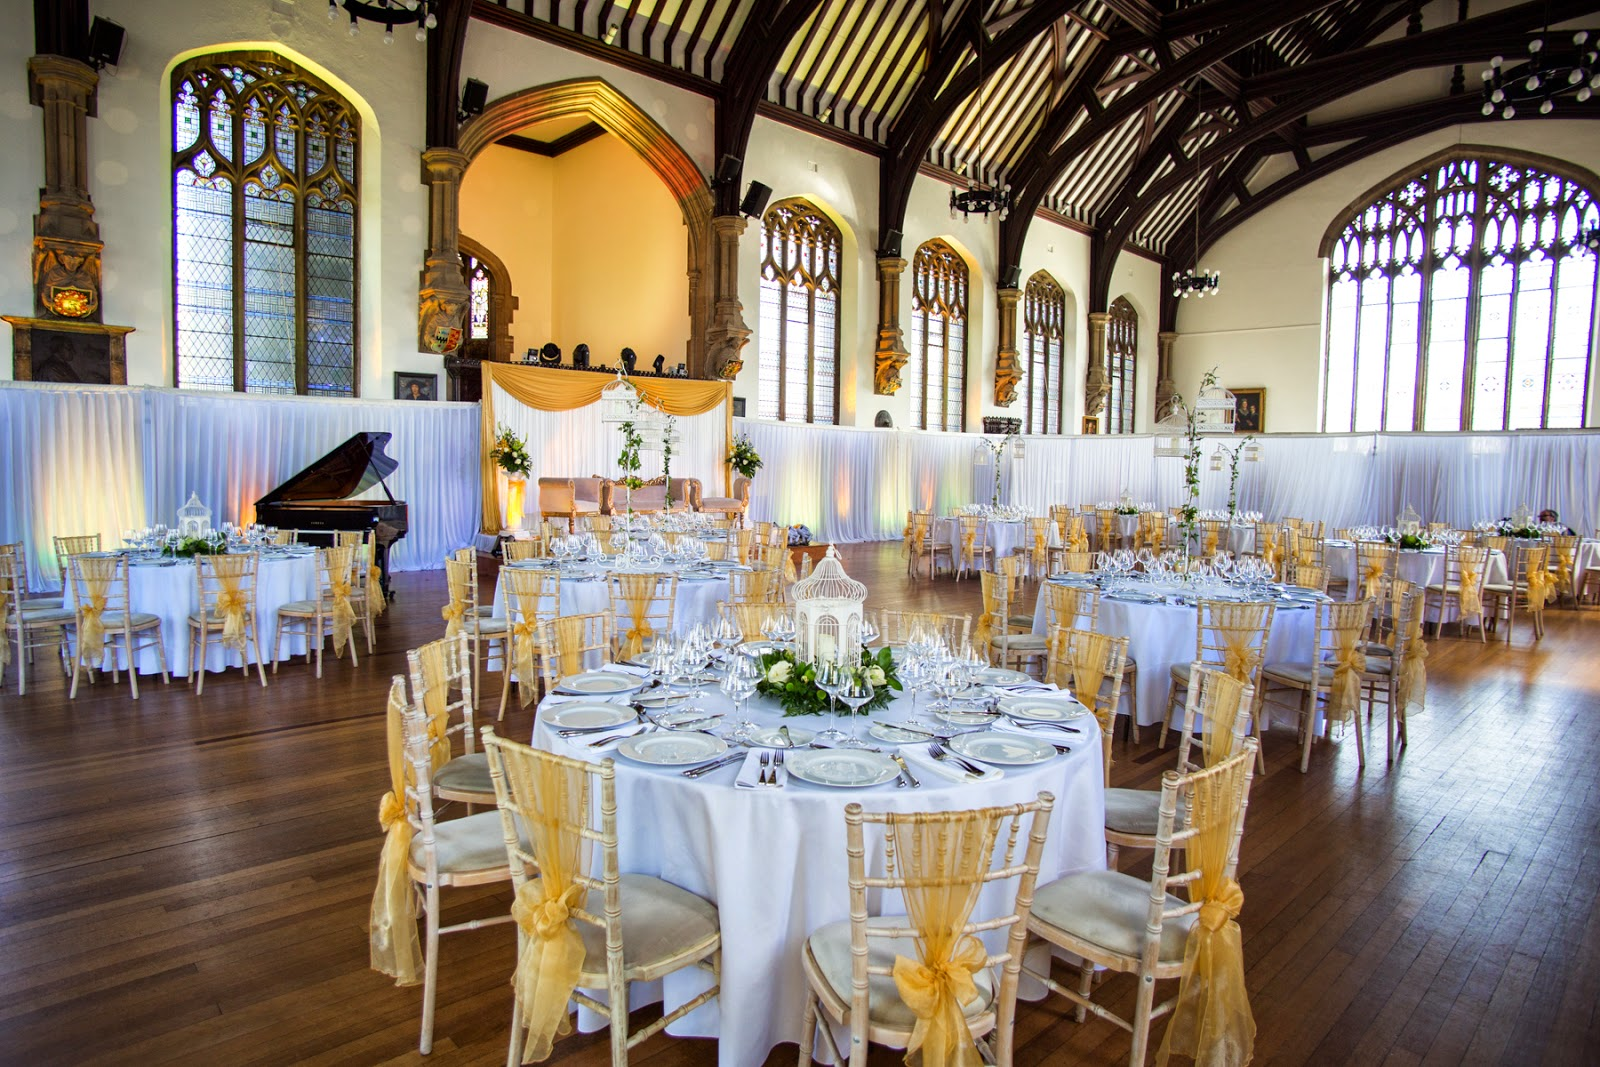 The wedding blog designer experience bristol most prestigious wedding venue the stunning bristol grammar school is giving you a very special opportunity to see inside the great hall solutioingenieria Gallery